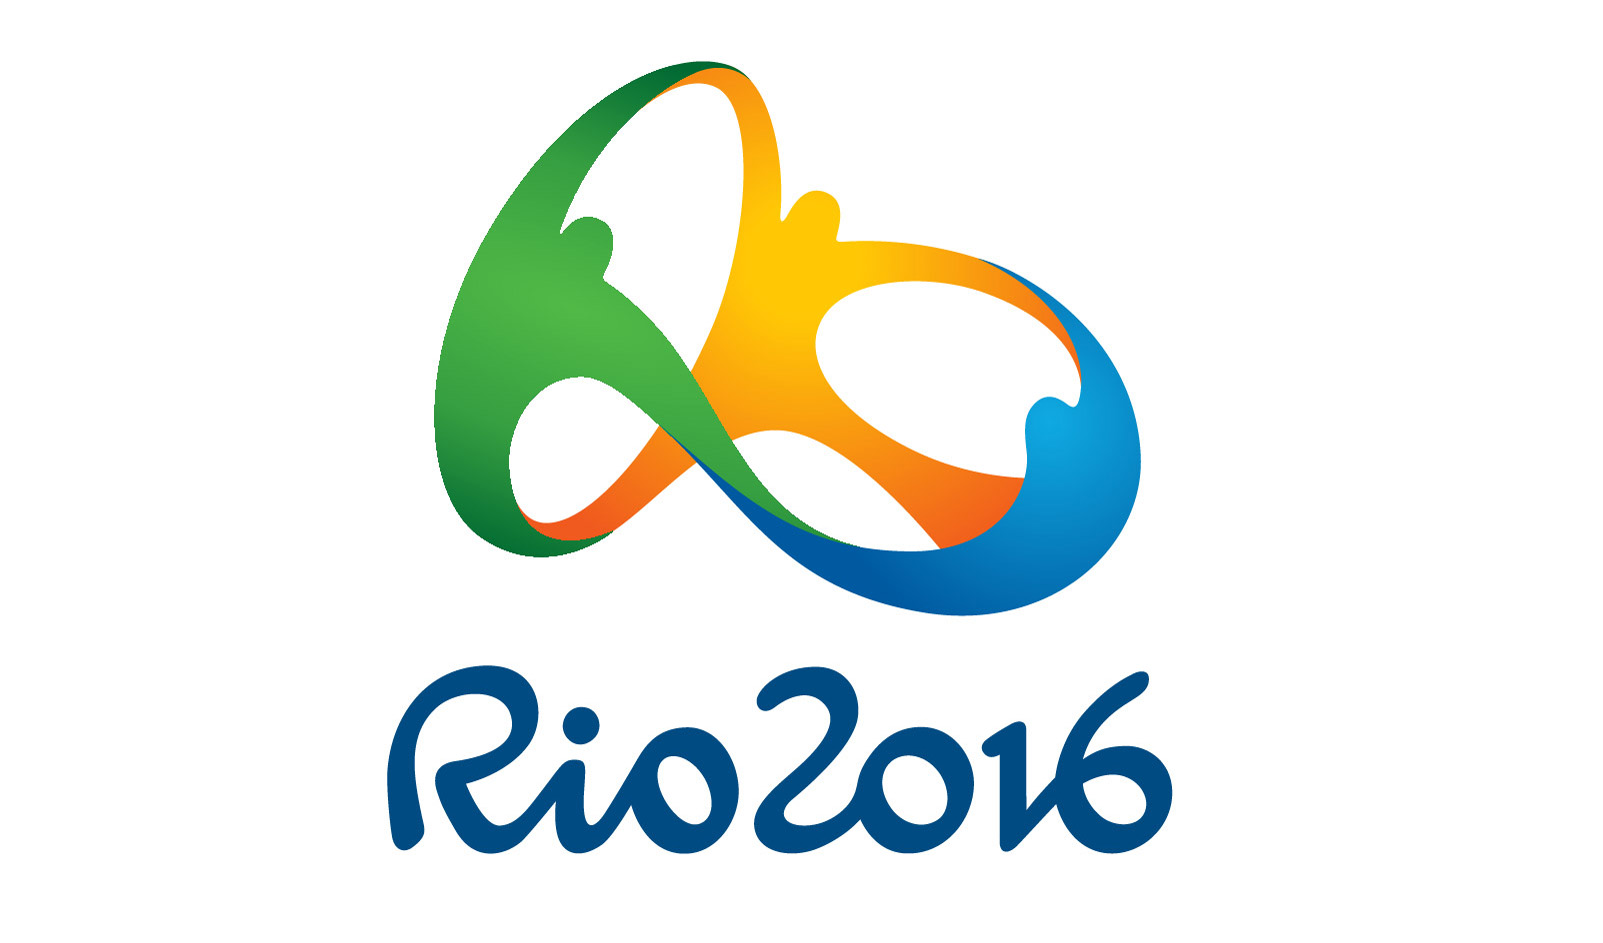 Rio 2016 Olympic Logo Vector Graphic_4